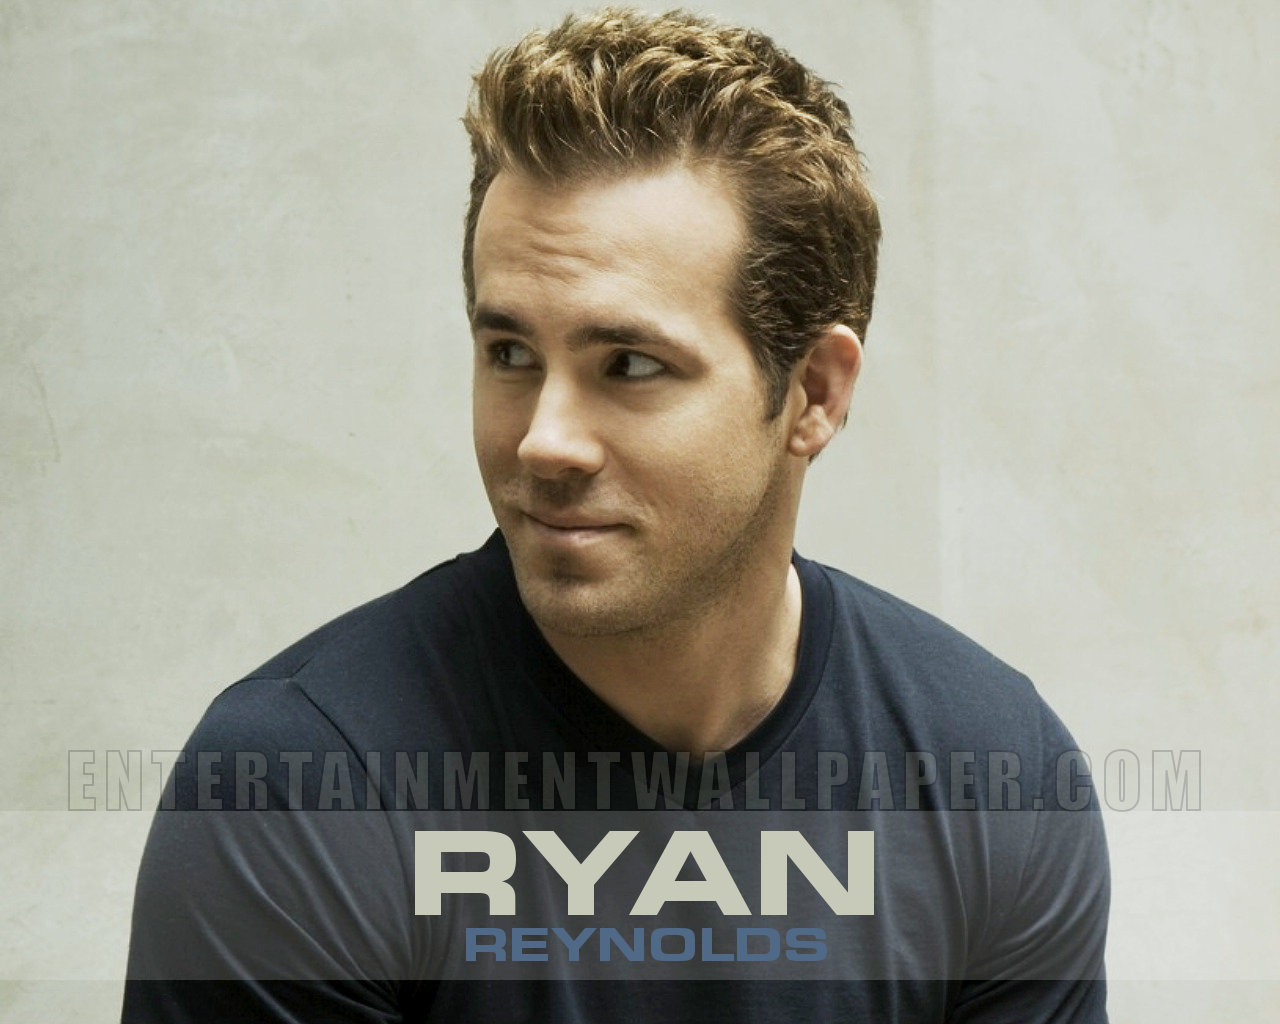 Ryan Reynolds - Ryan Reynolds Wallpaper (15764587) - Fanpop